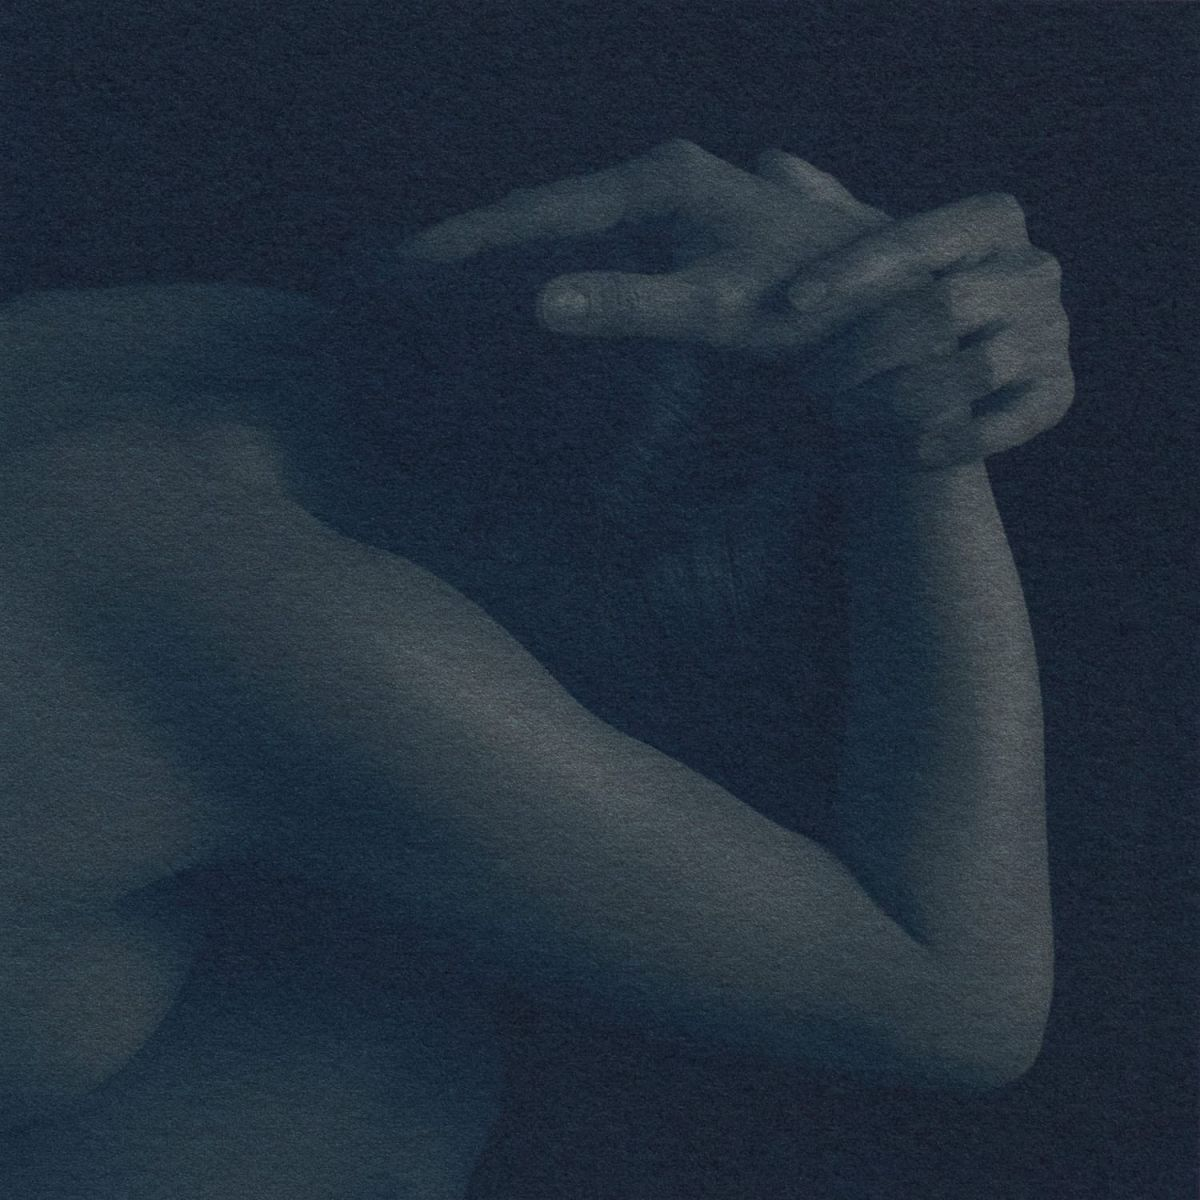 """Genuine Beauty: Hands over Head,"" 2019. Cyanotype over Platinum Palladium"